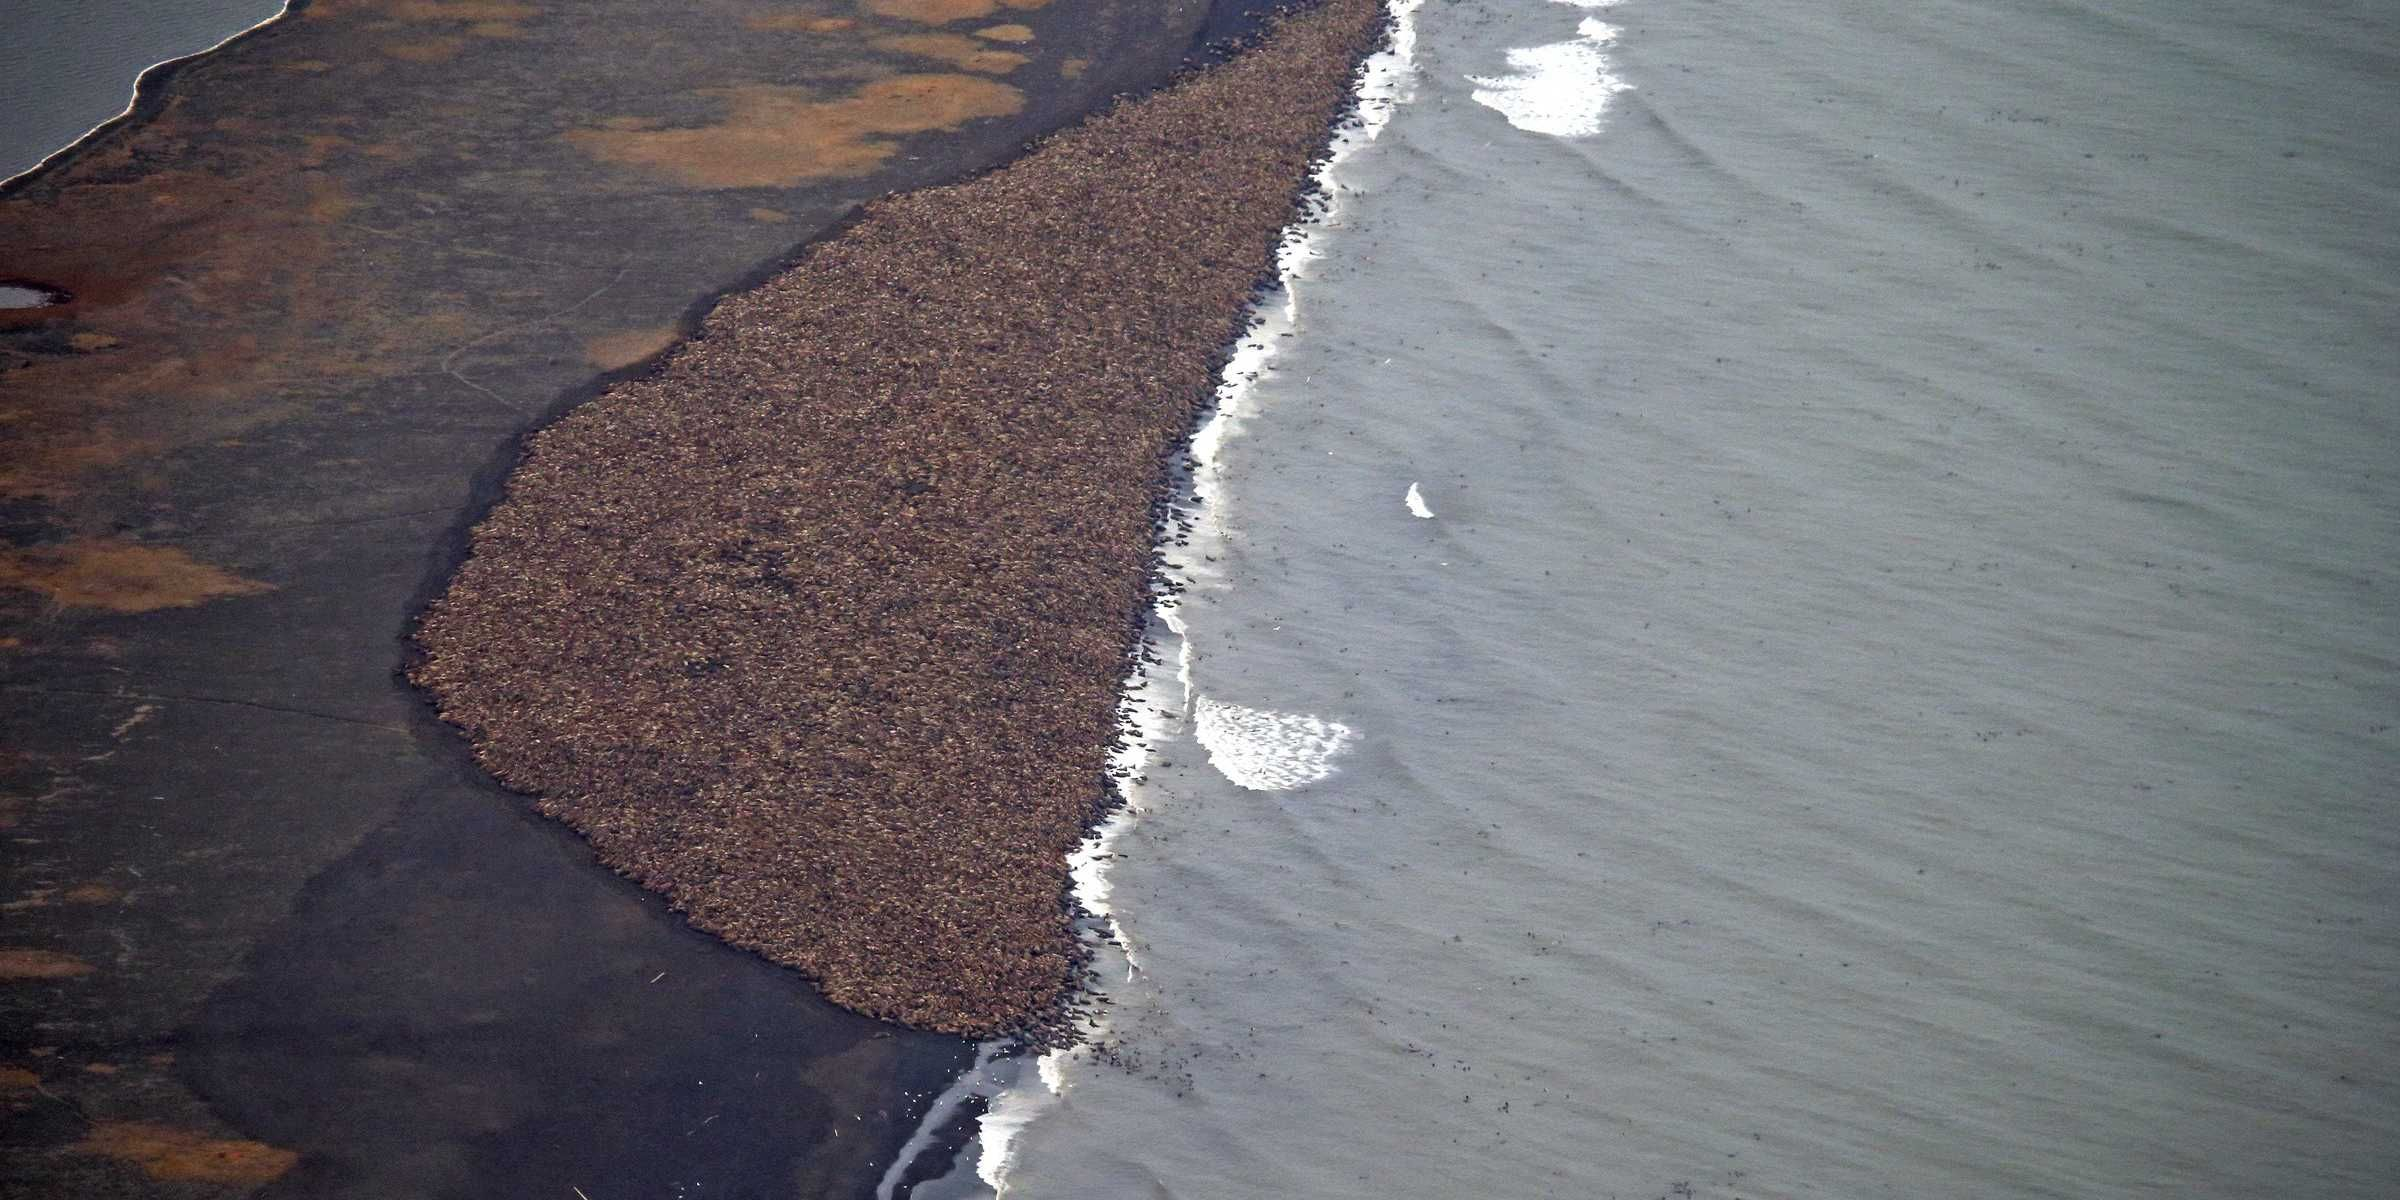 The U.S. Federal Aviation Administration has altered the path of flights over a shore near Point Lay, Alaska, where an estimated 35,000 Pacific walruses, unable to find sea ice, have clustered together near the beach.  The fear is that planes will startle the giant clump of walruses, causing a stampede that could be particularly dangerous for baby walruses, according to The Guardian.